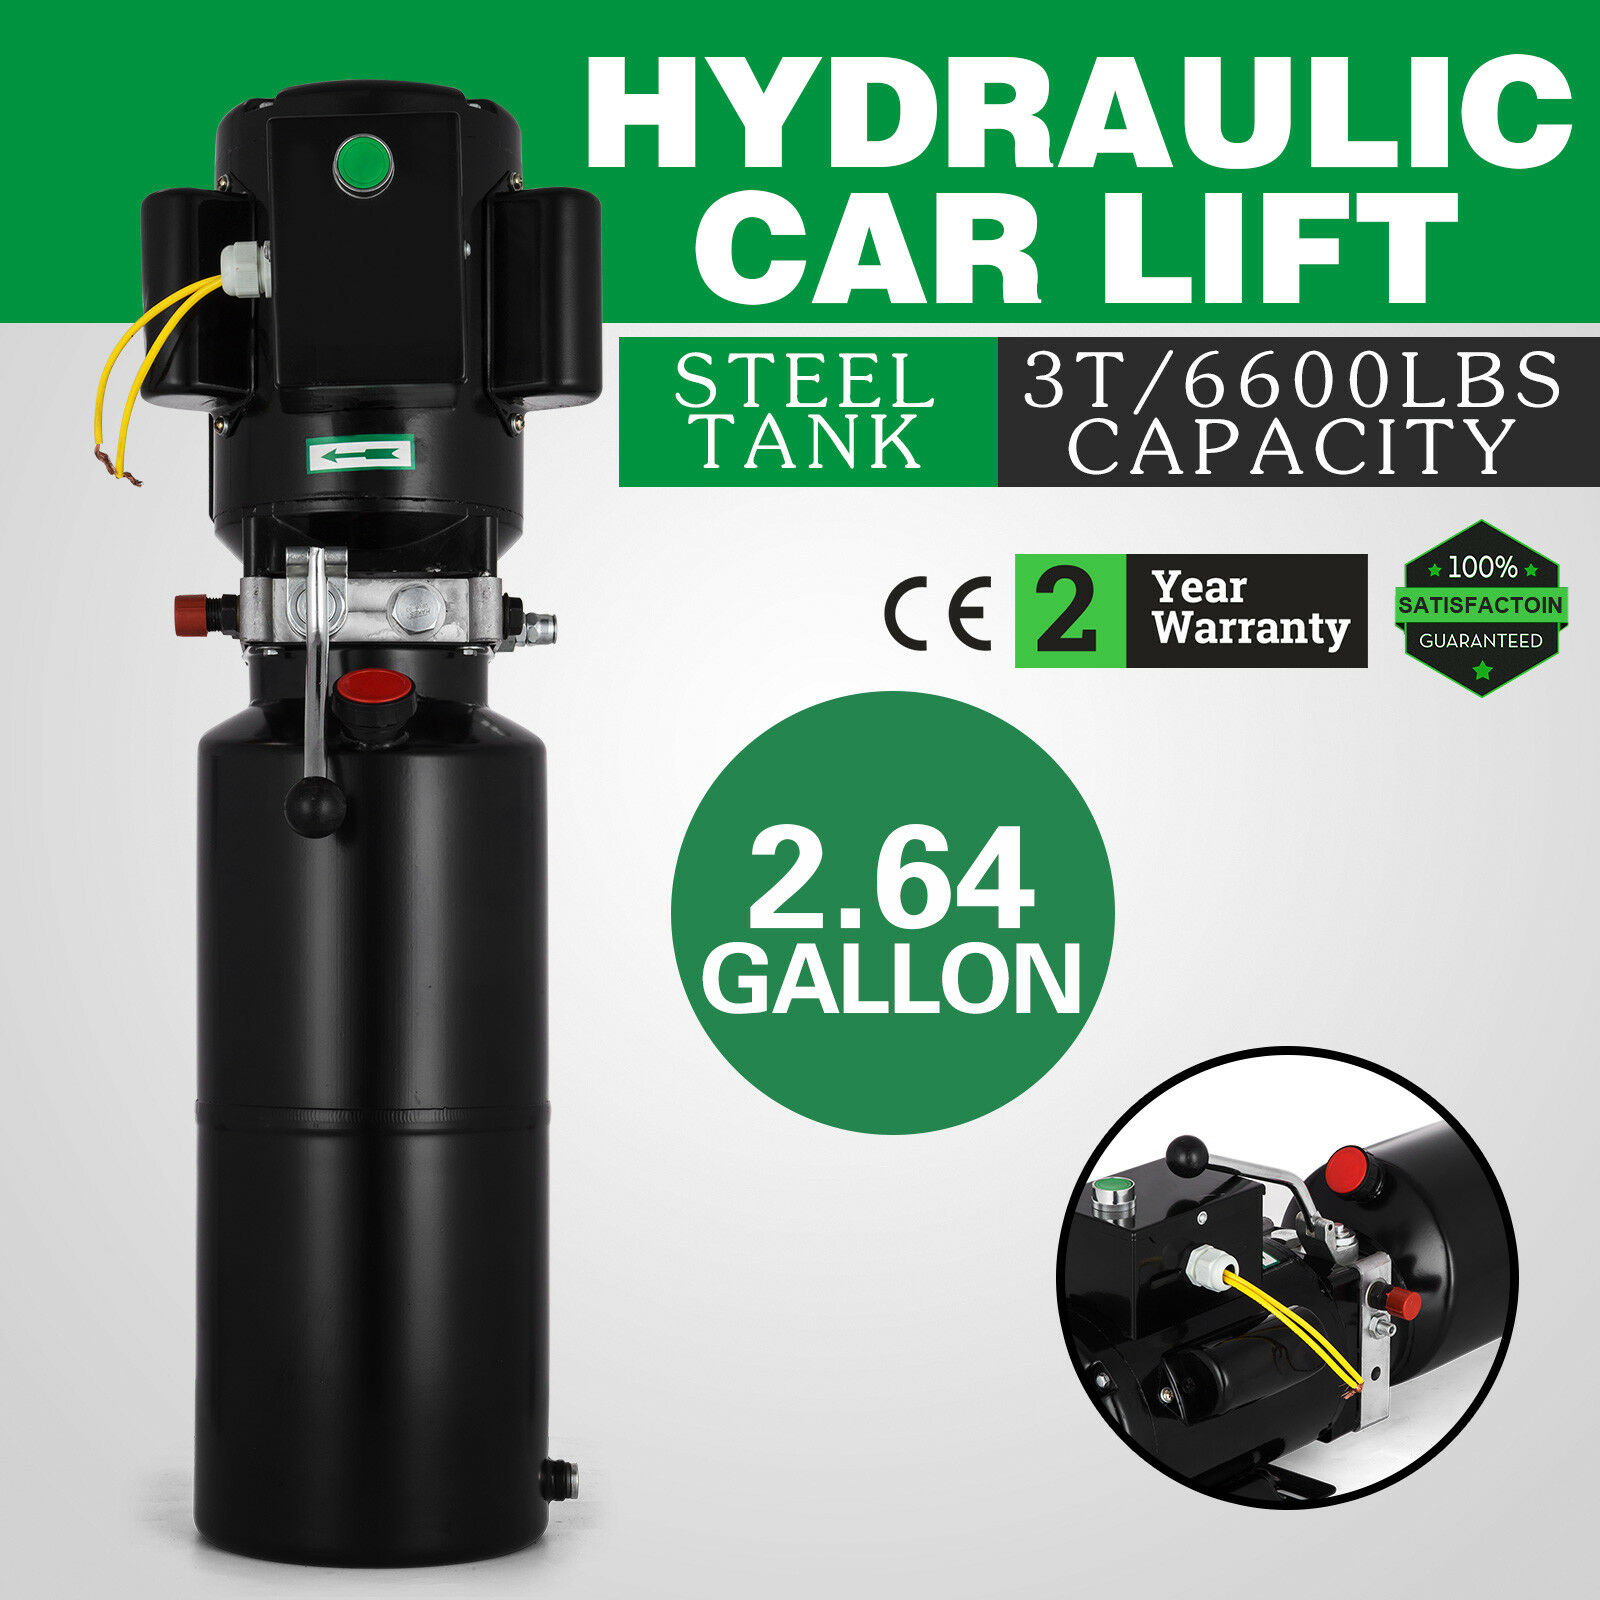 14l Car Lift Hydraulic Power Unit 60hz 1 ph 220V 2950 psi Hydraulic Pump